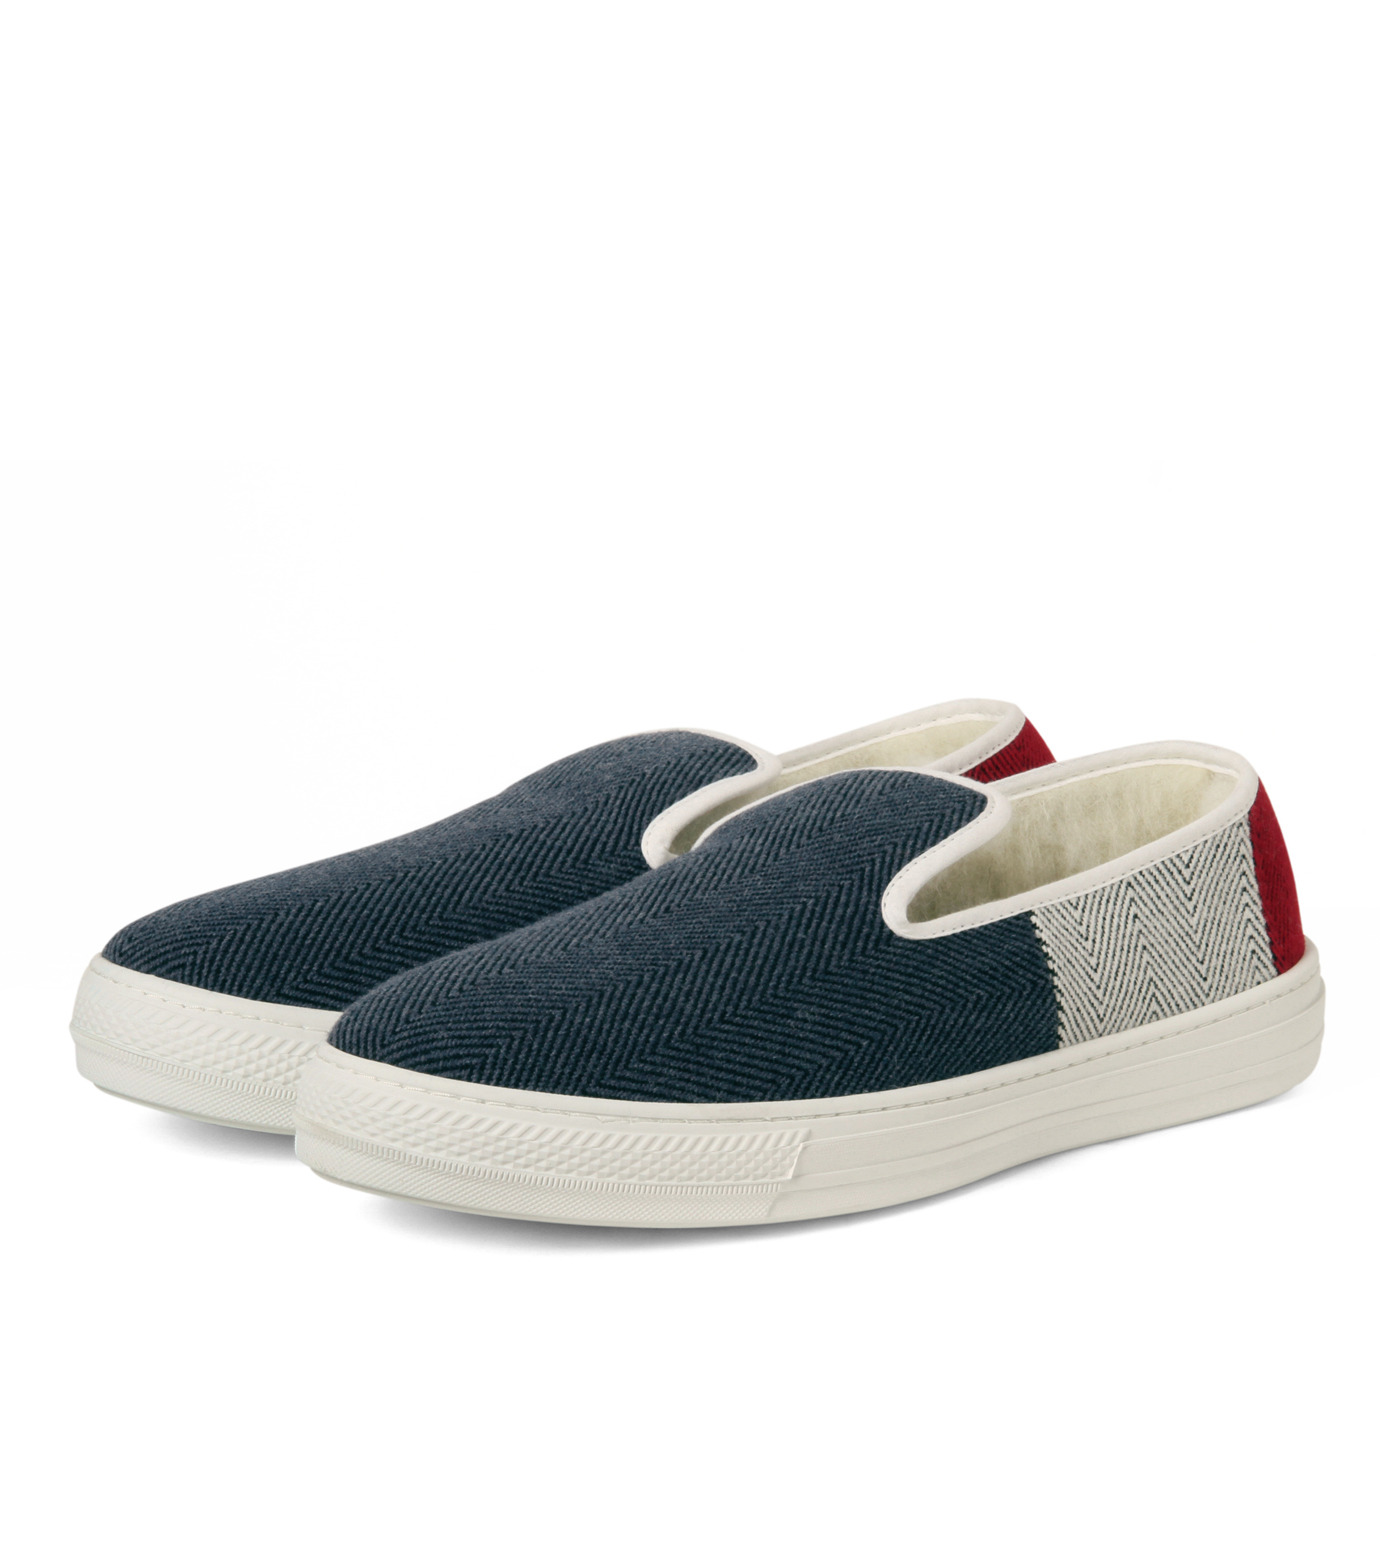 TAISE by SOUSTS(TAISE by SOUSTS)のAnatole France-MULTI COLOUR(スニーカー/sneaker)-ANATOLE-9 拡大詳細画像4